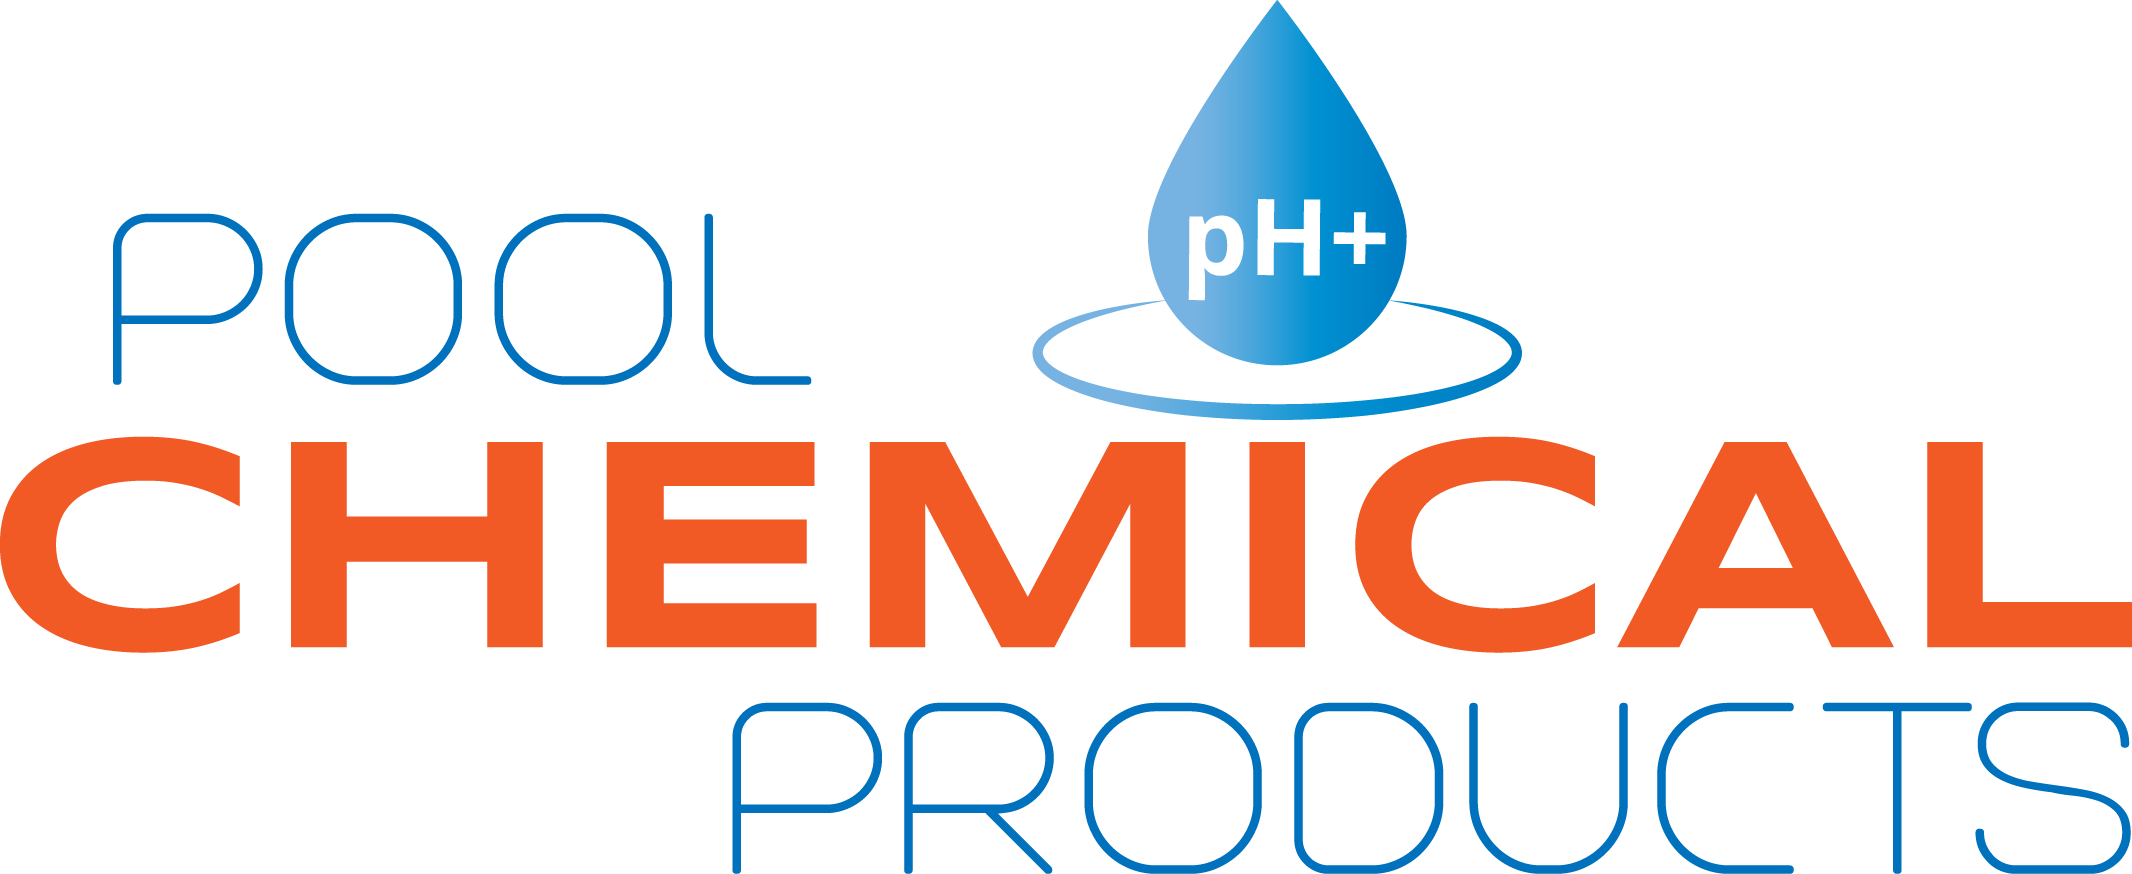 poolchemicalproducts.com